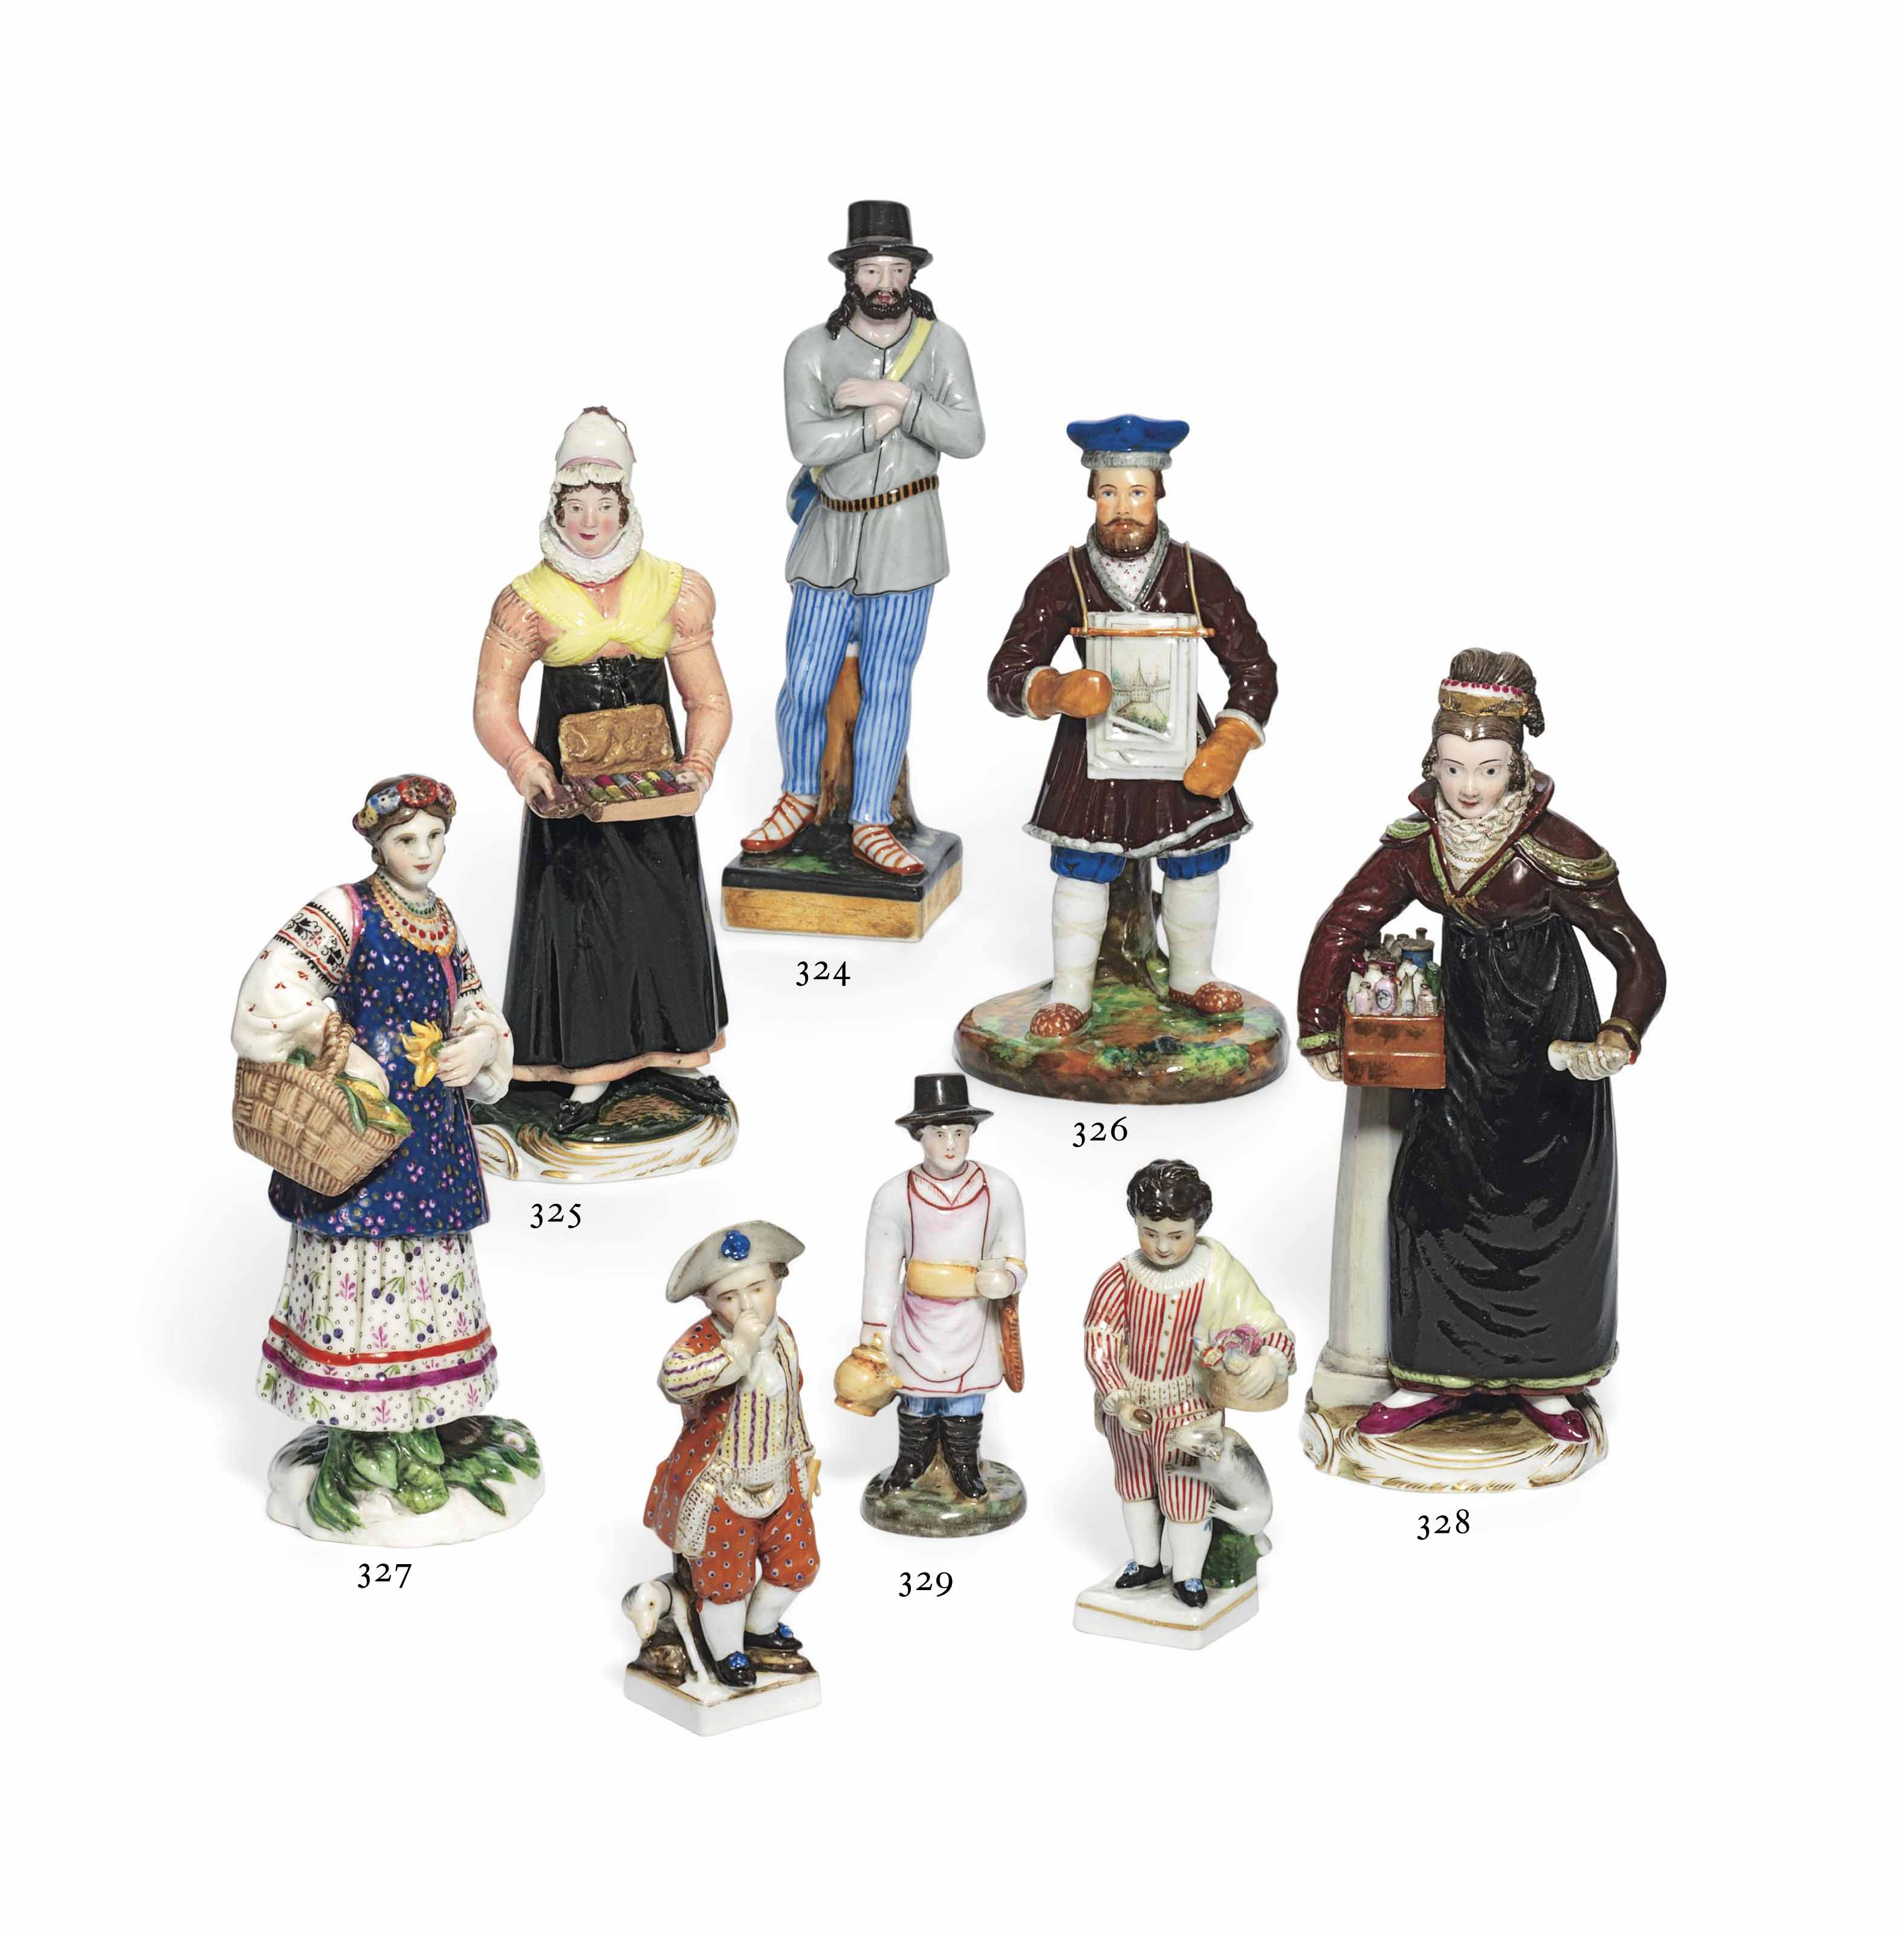 A PORCELAIN FIGURE OF A SELLER OF COSMETICS